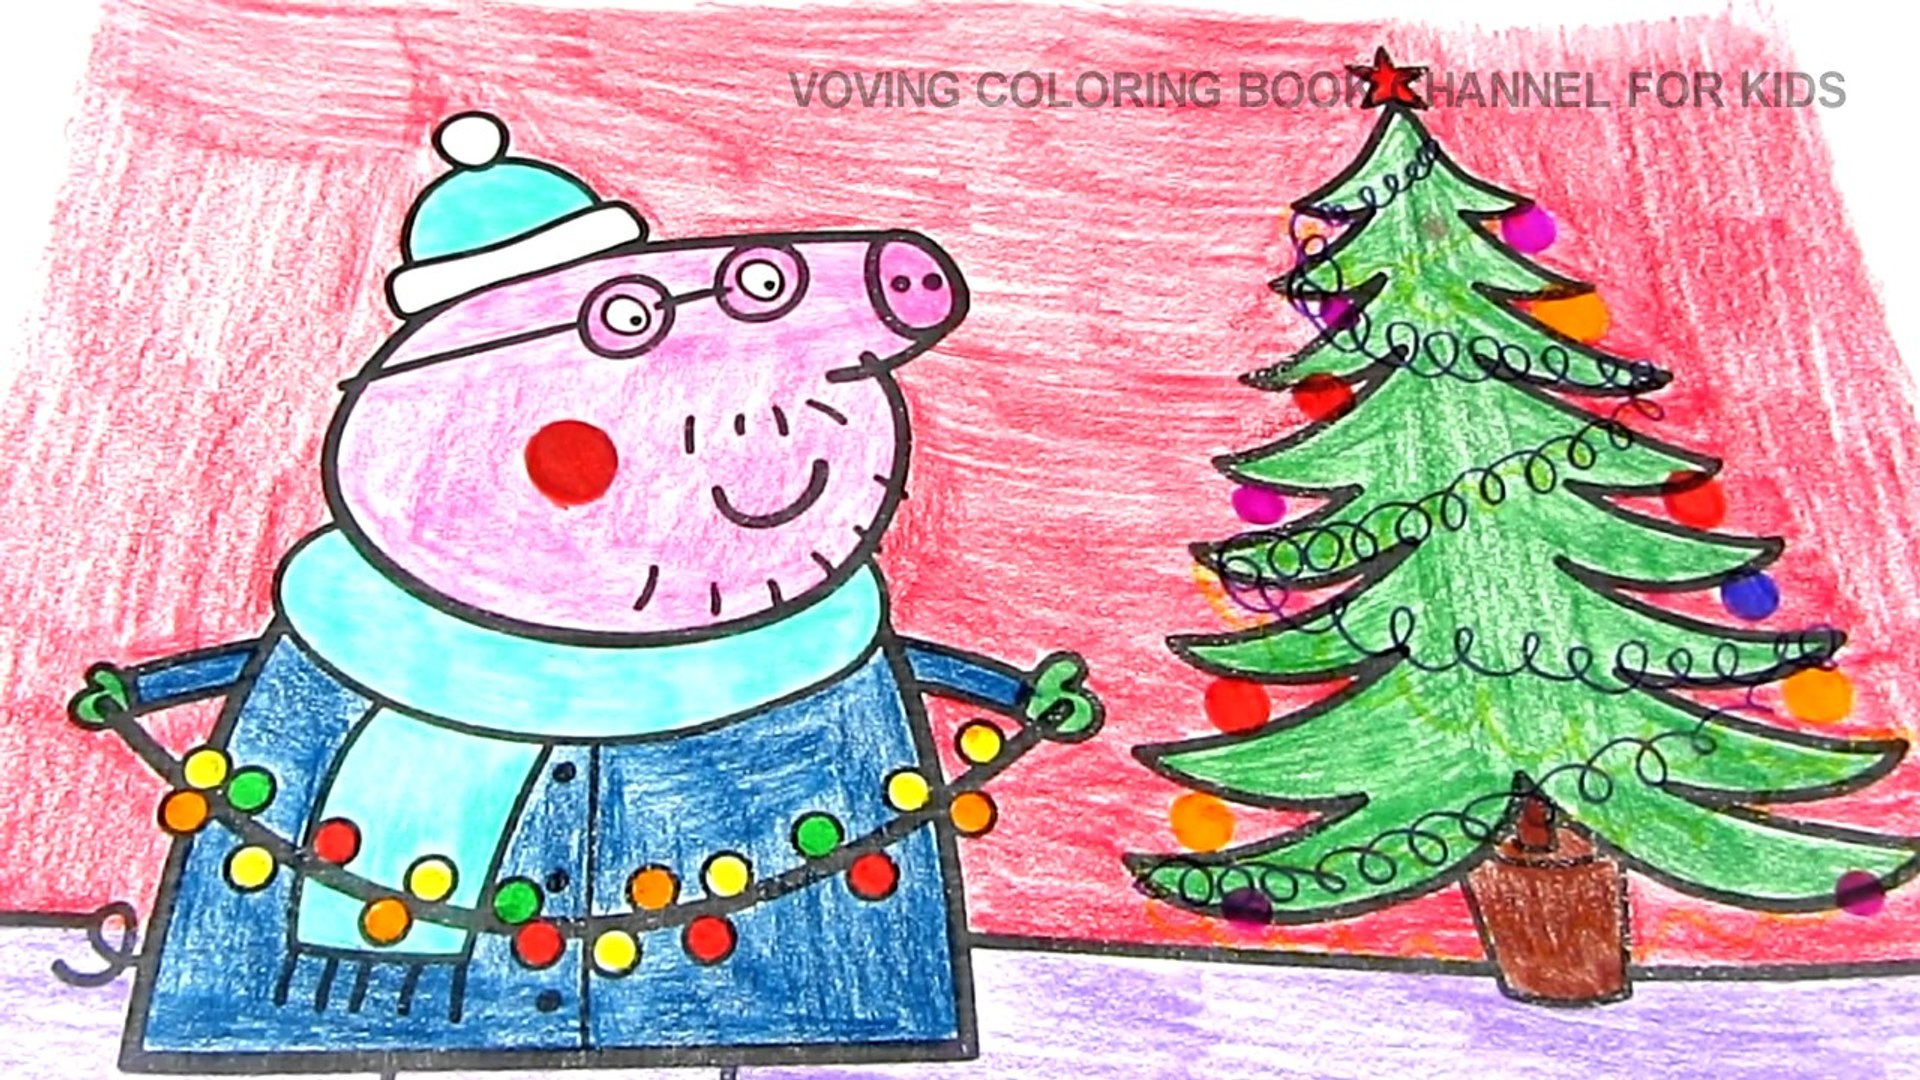 Peppa Pig Daddy Pig Christmas Coloring Book Pages Fun Coloring Video For Kids Video Dailymotion